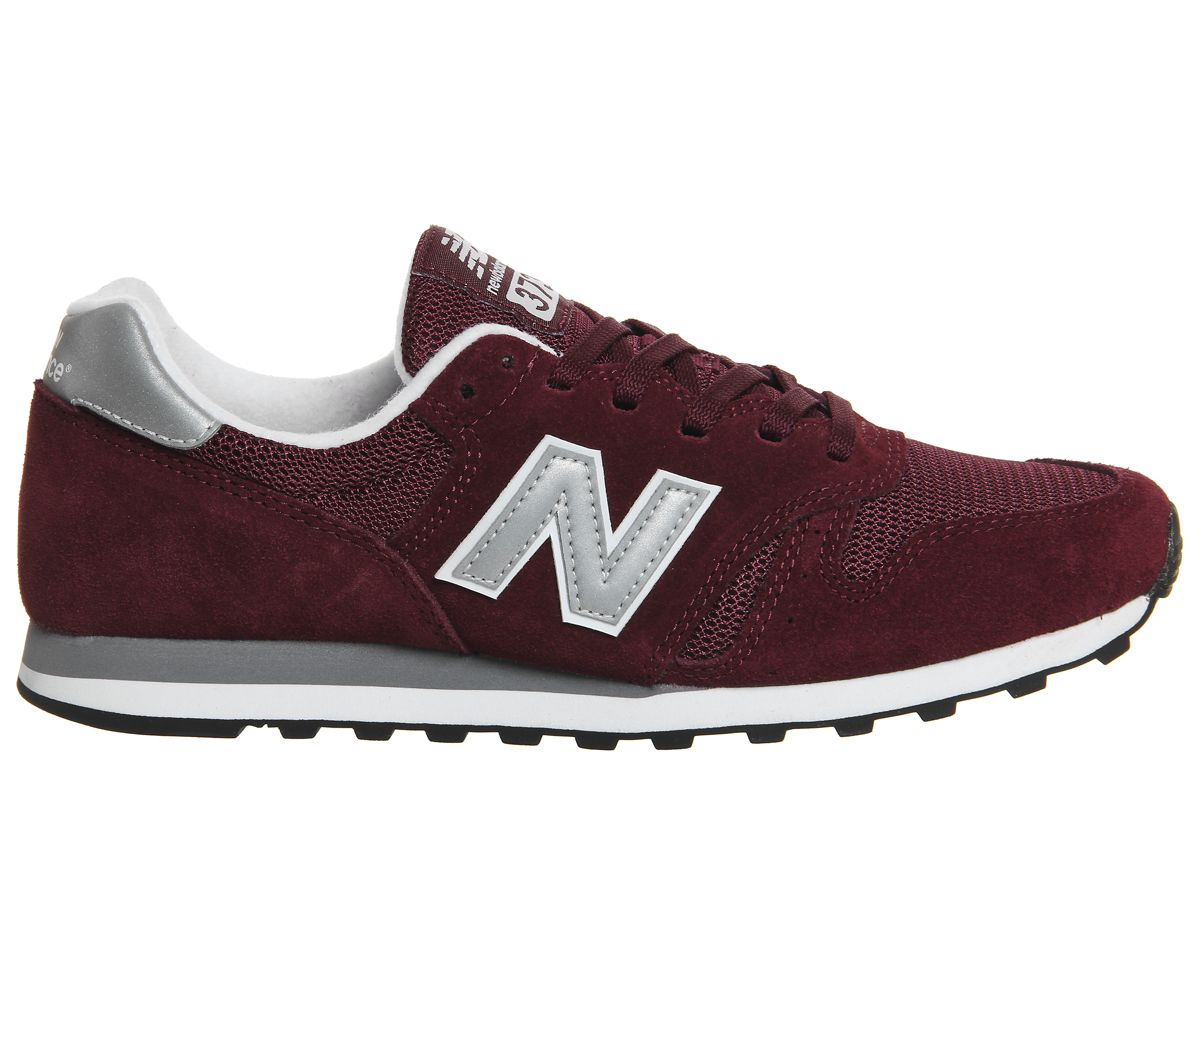 7485fabf49f Sentinel Mens New Balance 373 Burgundy Silver Trainers Shoes